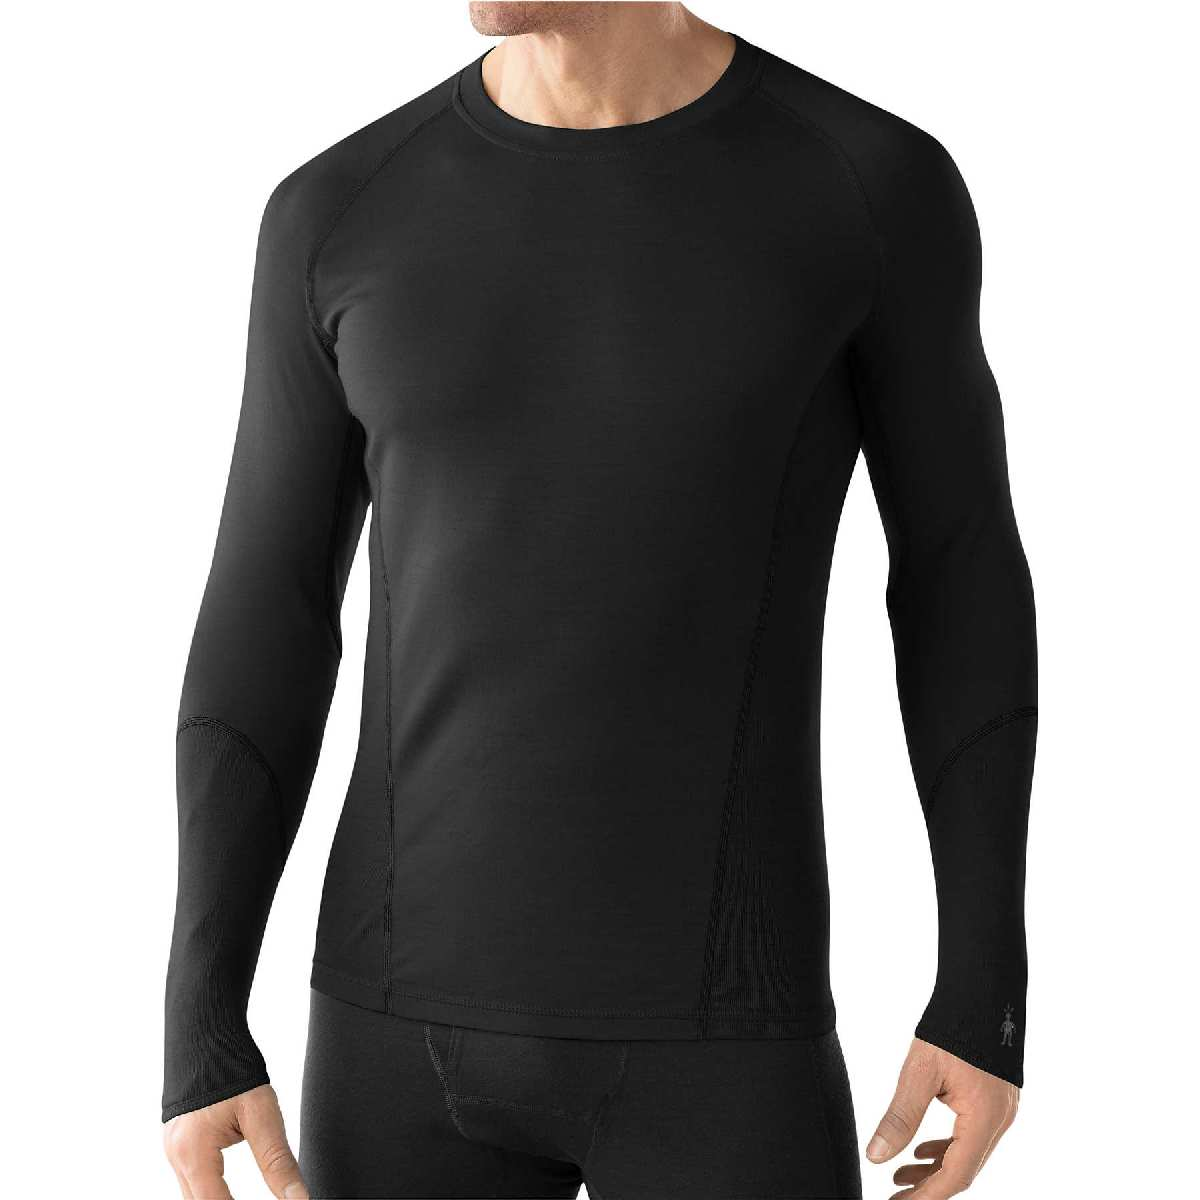 SmartWool NTS Light 195 Crew Long Sleeve Base Layer Men's Size M Black U.S.A. & Canada